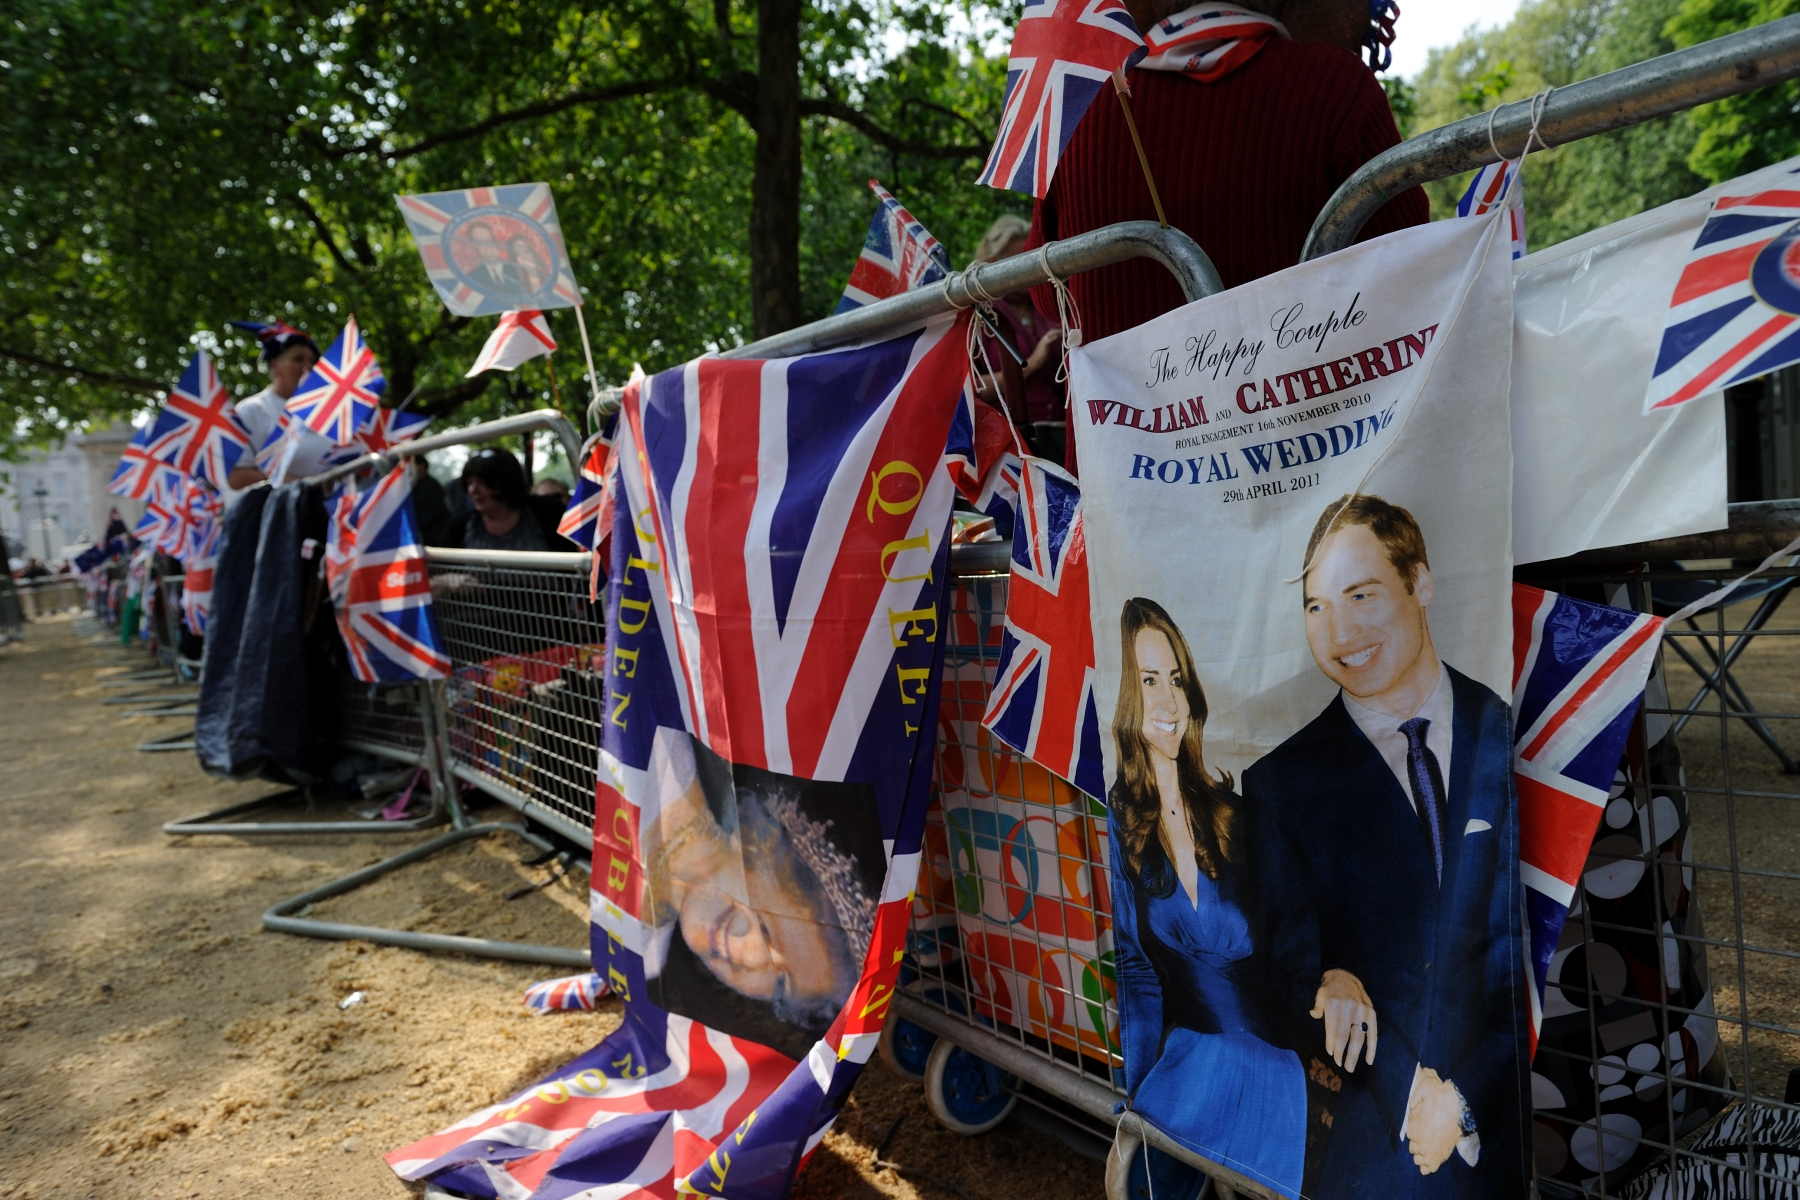 London is ready to celebrate the much anticipated wedding of His Royal Highness Prince William of Wales and Miss Catherine Middleton.